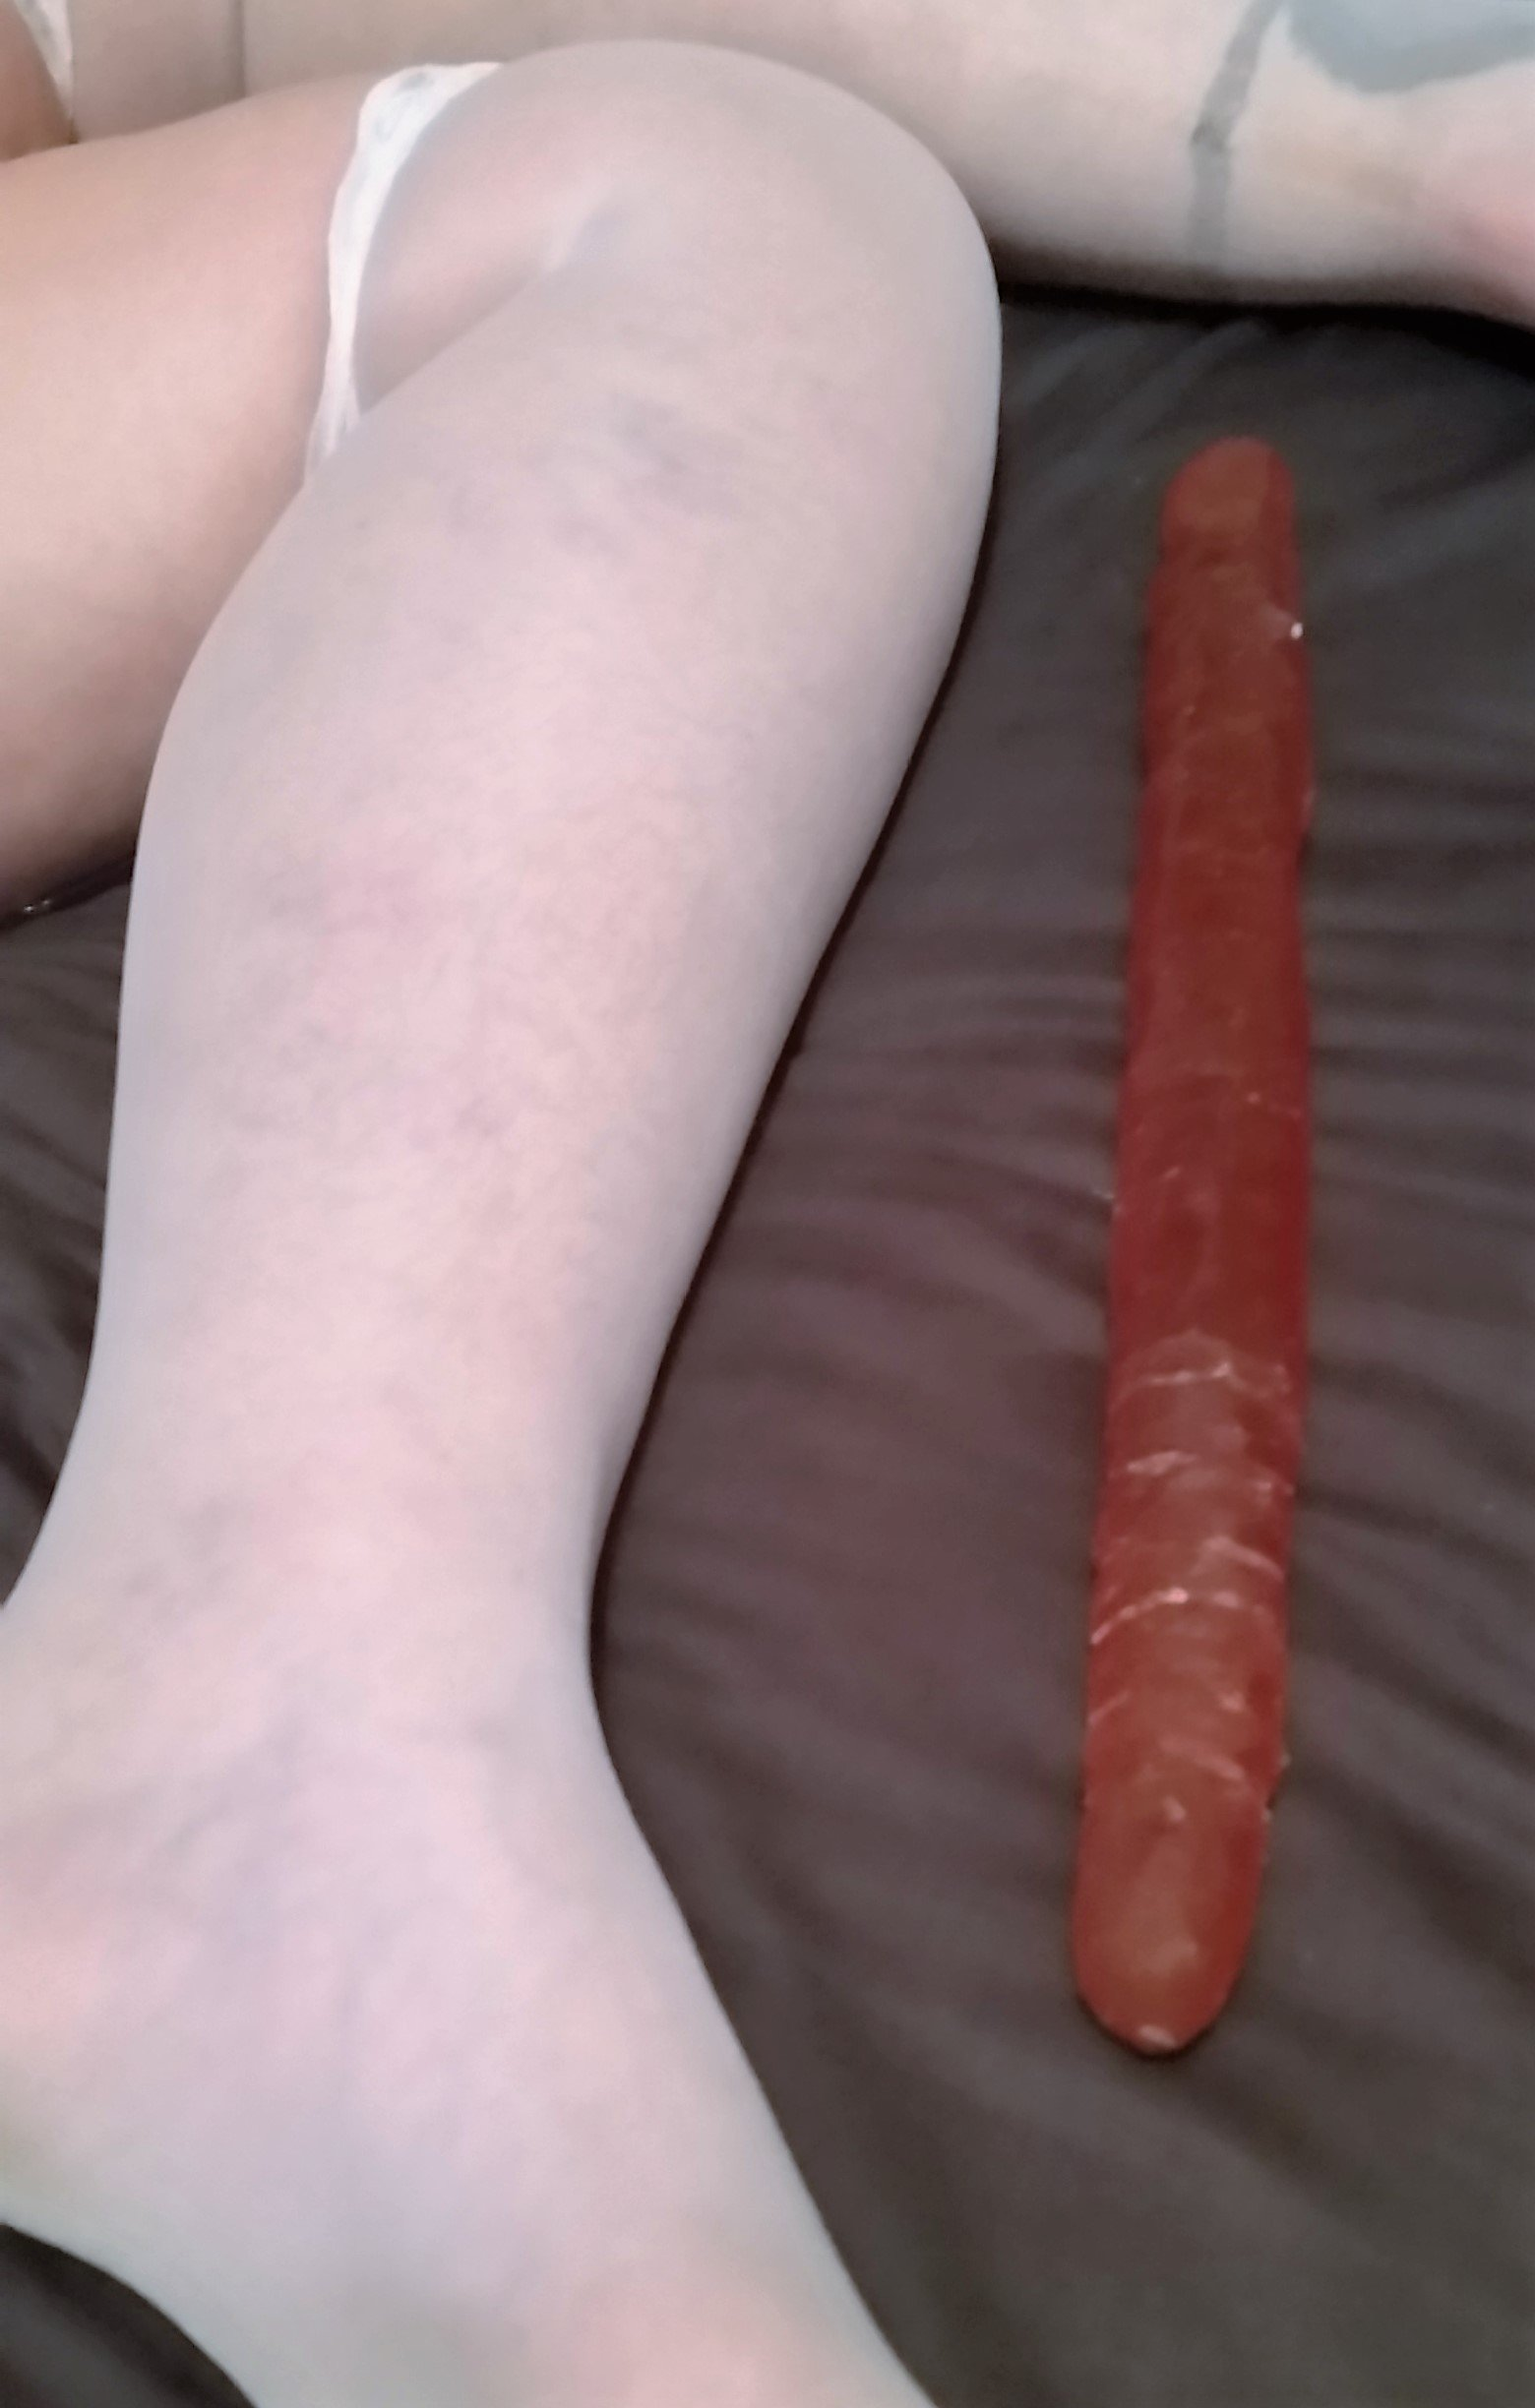 Girlfriend tappy Dita dildo rapidshare strep teas xxx